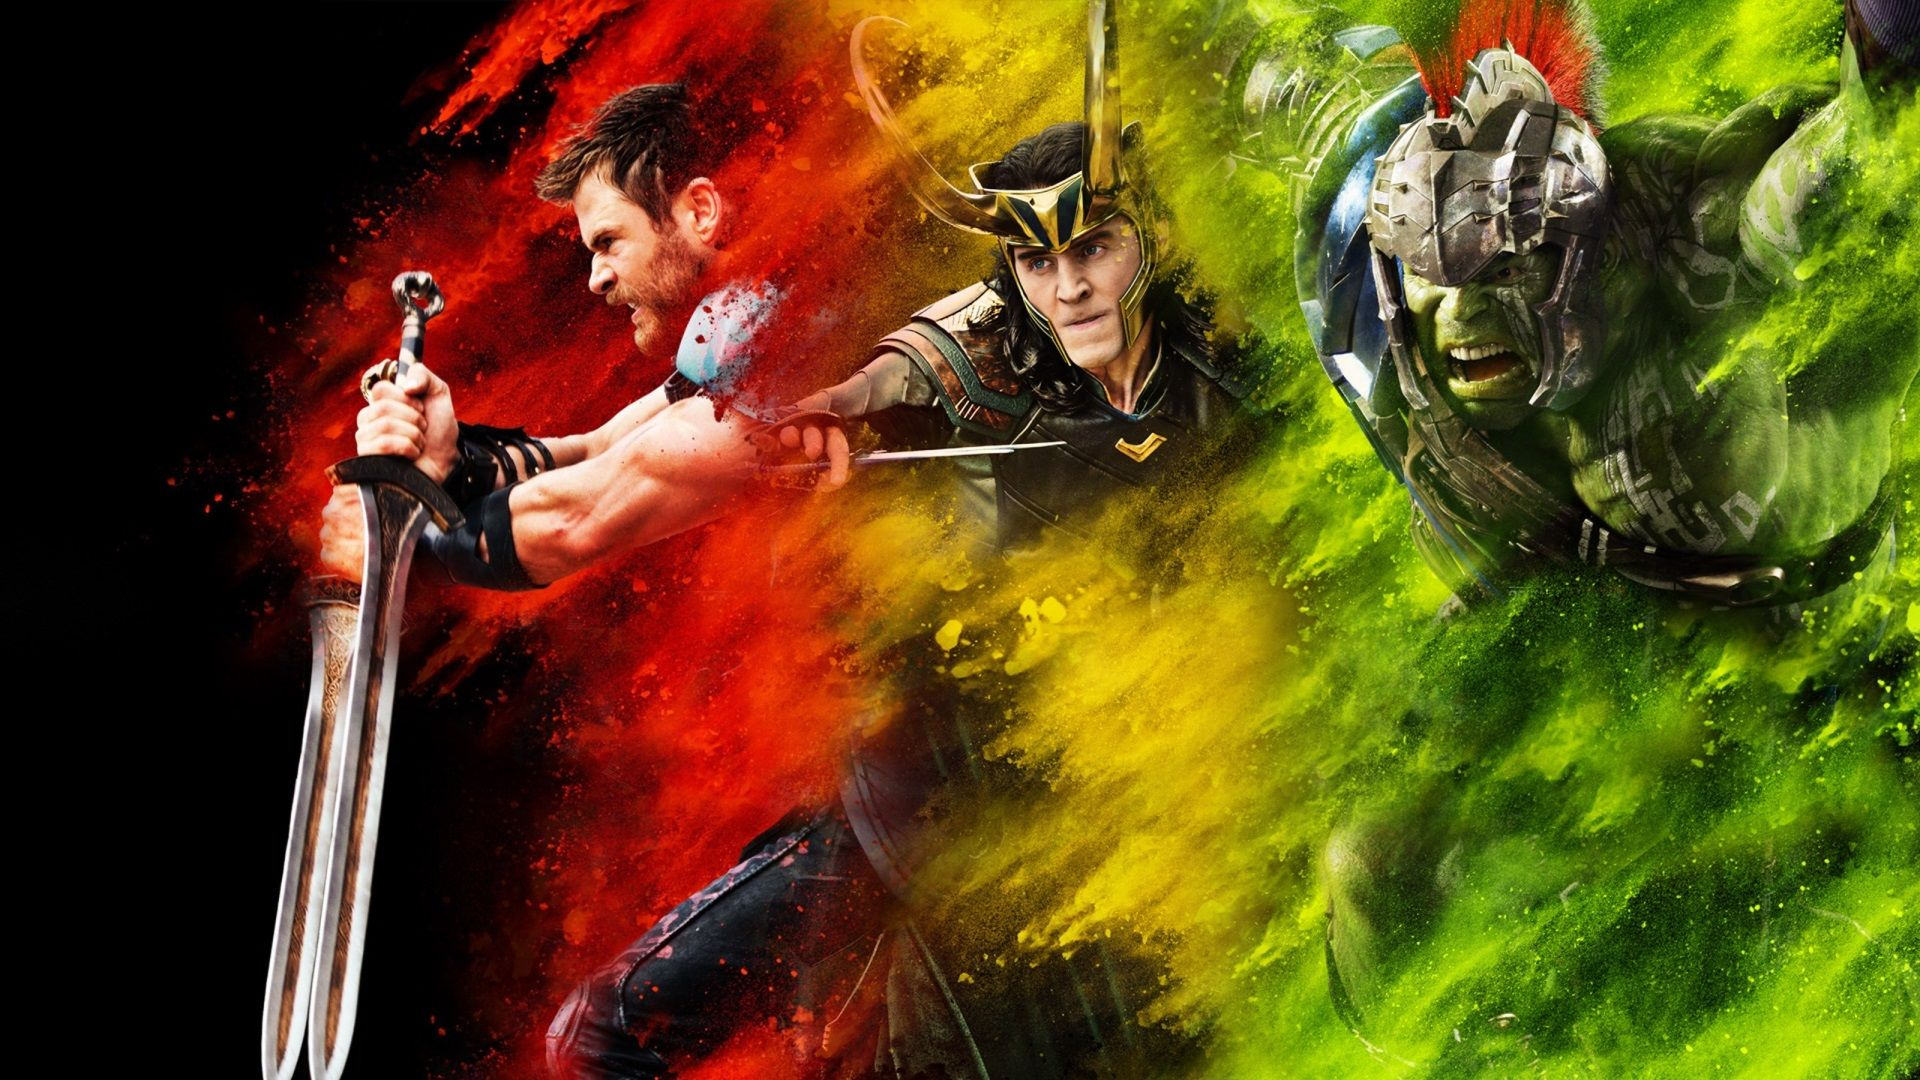 1920x1080 Thor Ragnarok Download Hd Wallpaper For Desktop Hero